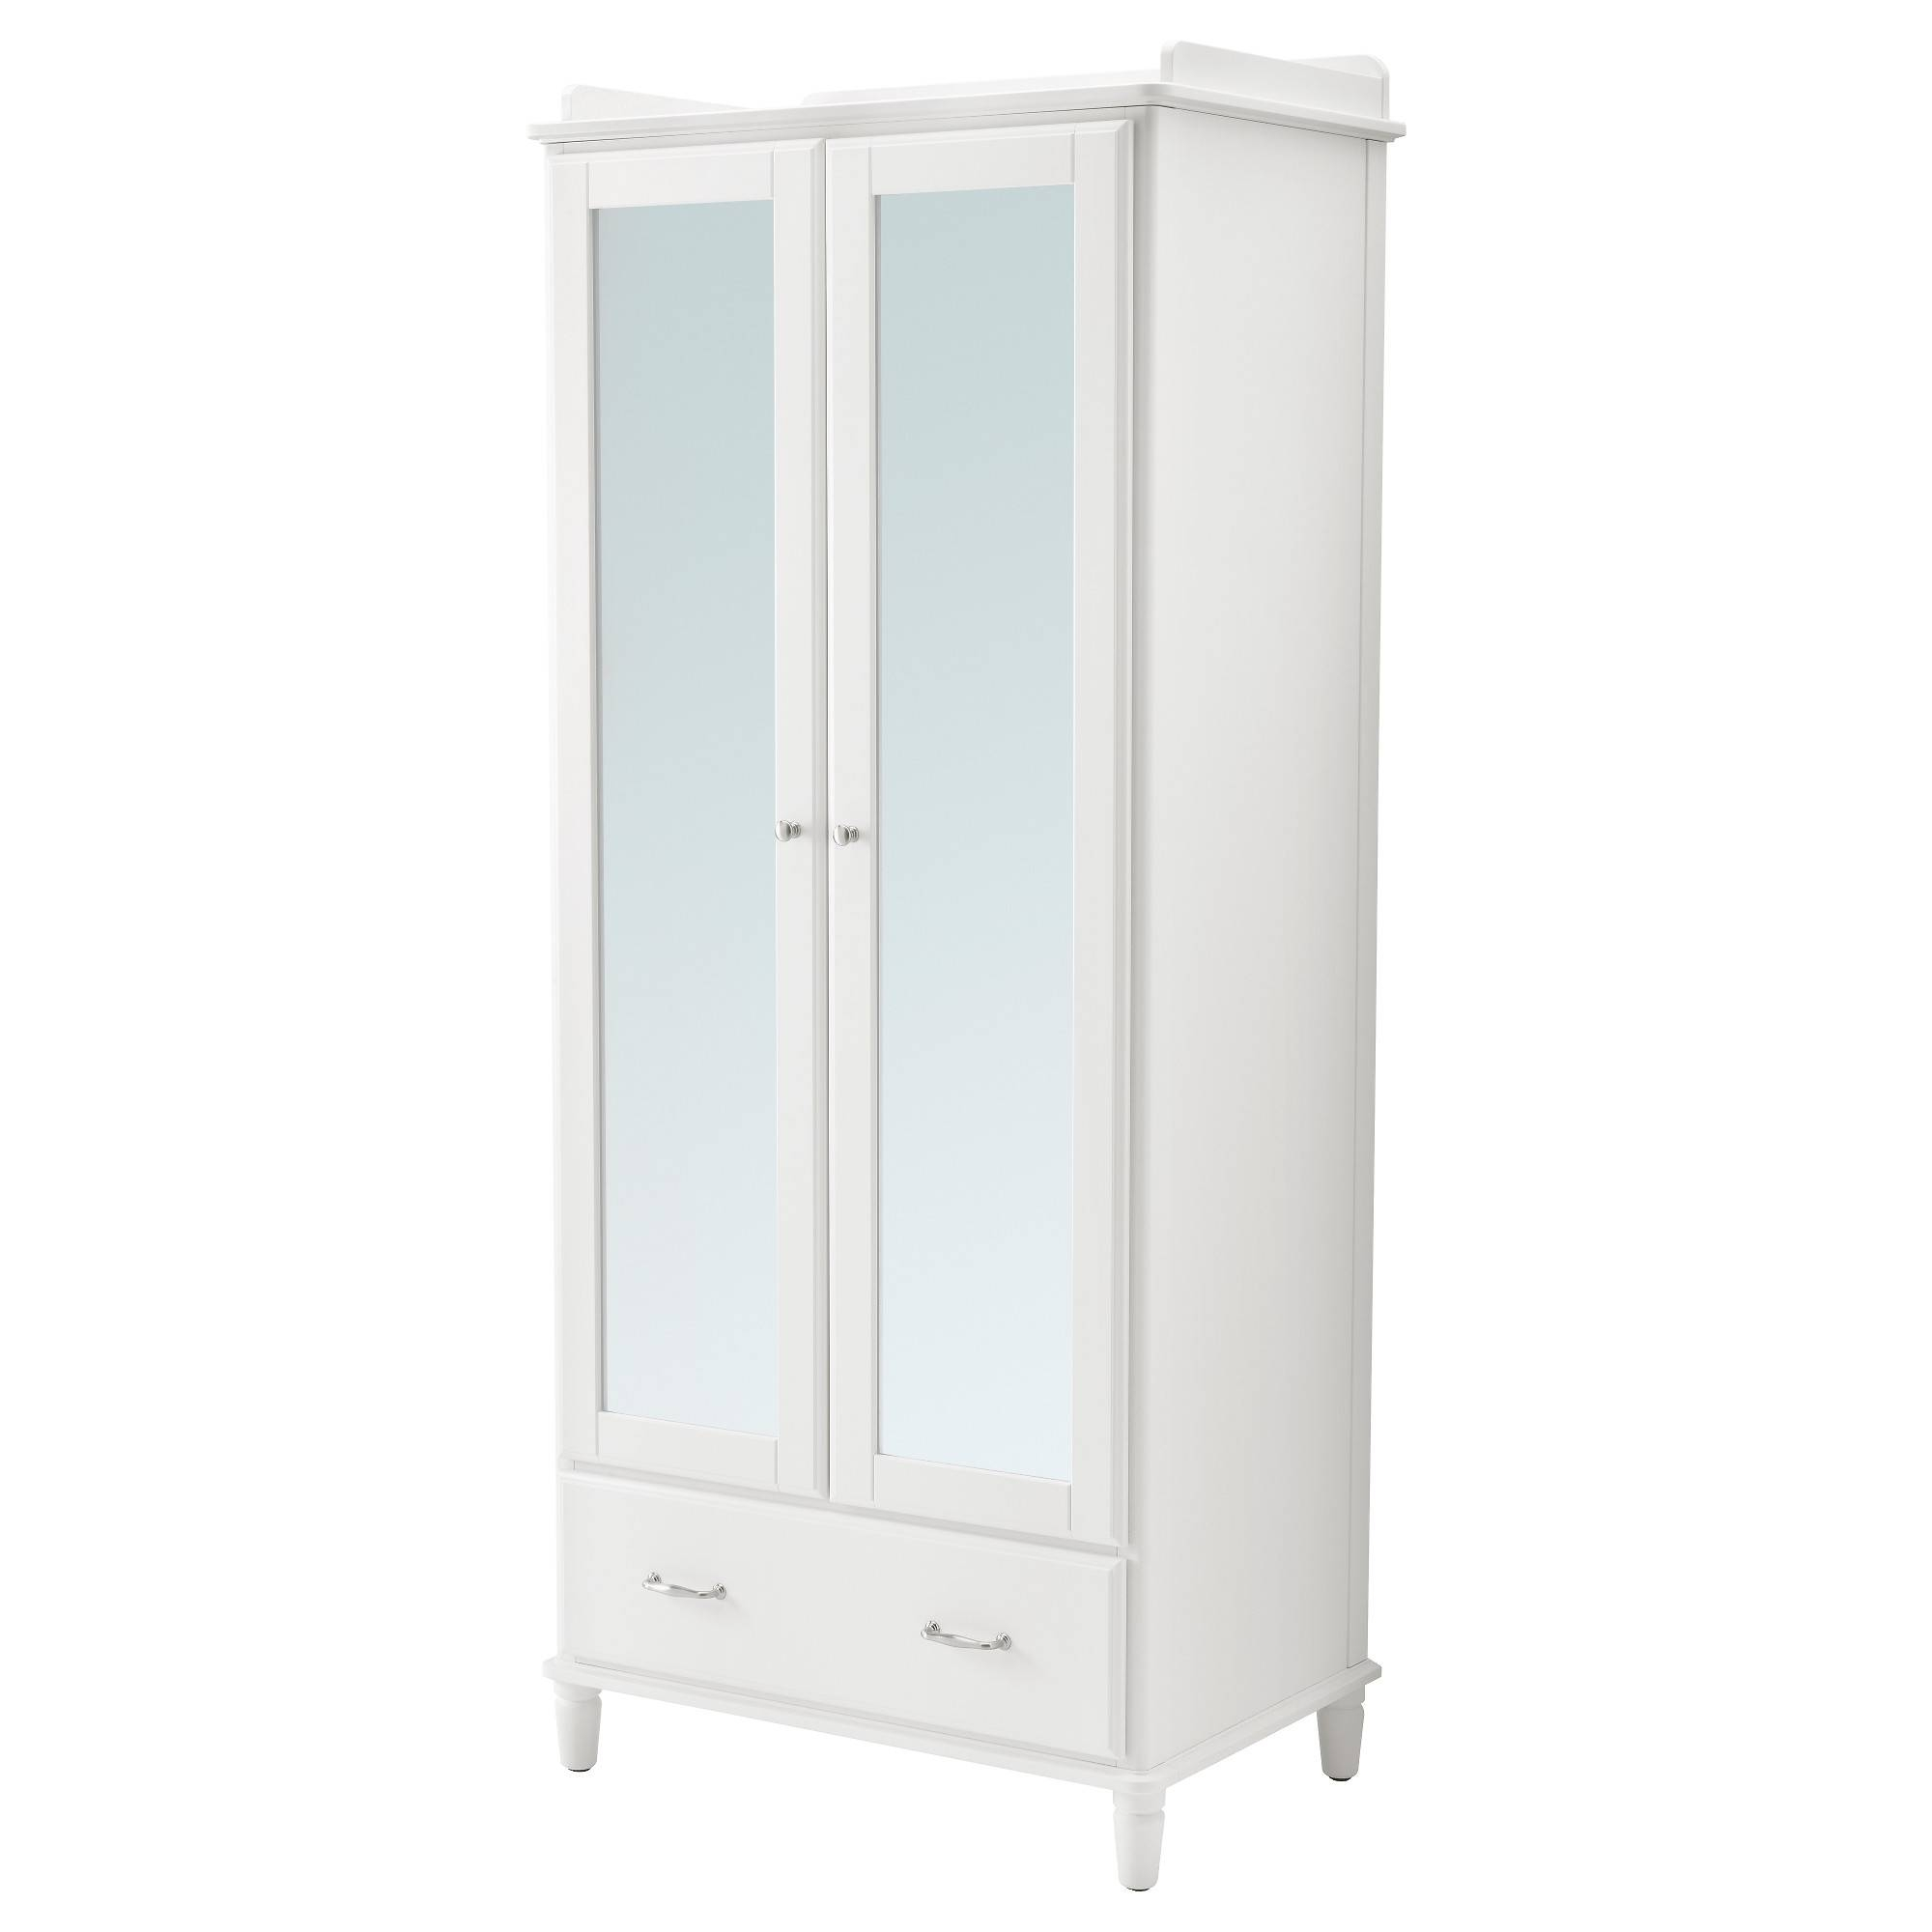 Free Standing Wardrobes | Ikea intended for White Wardrobes With Drawers (Image 4 of 15)